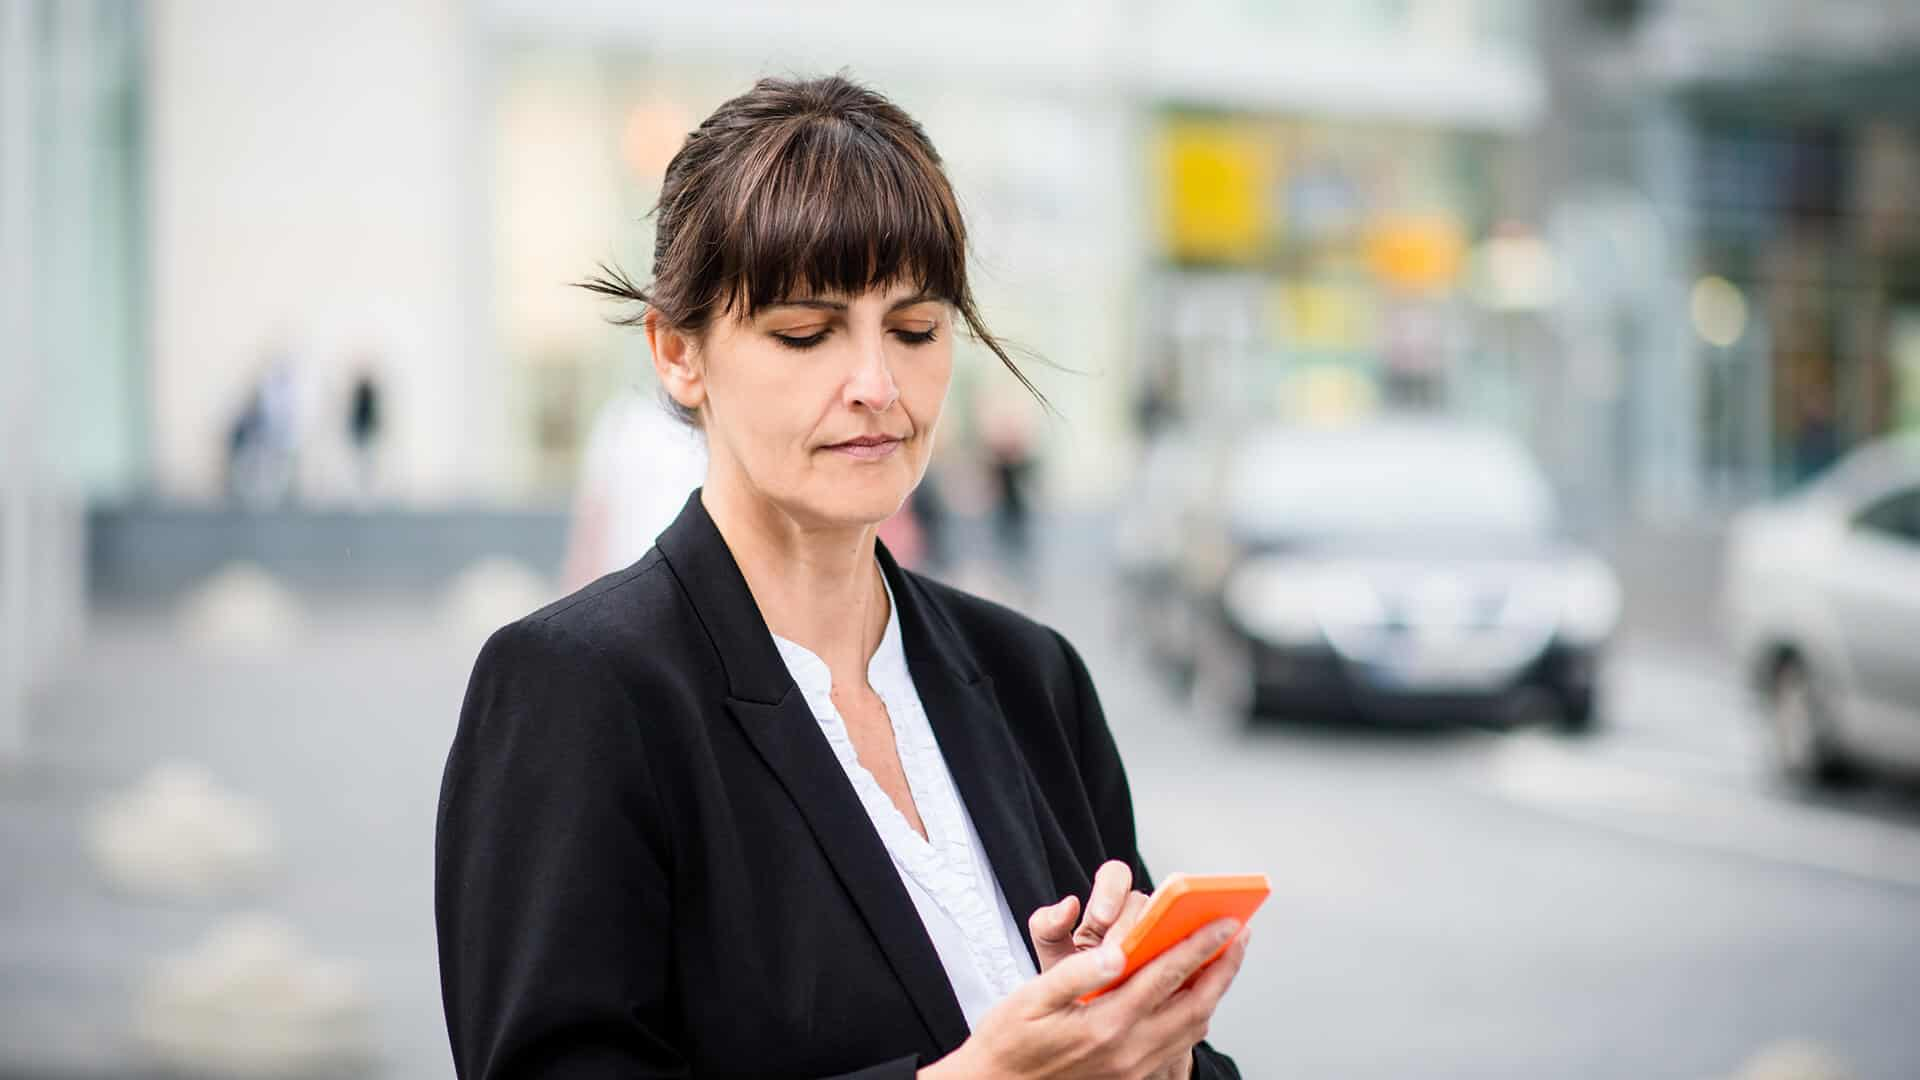 Using a Texting Service for Business: Benefits of MMS Messaging with Customers